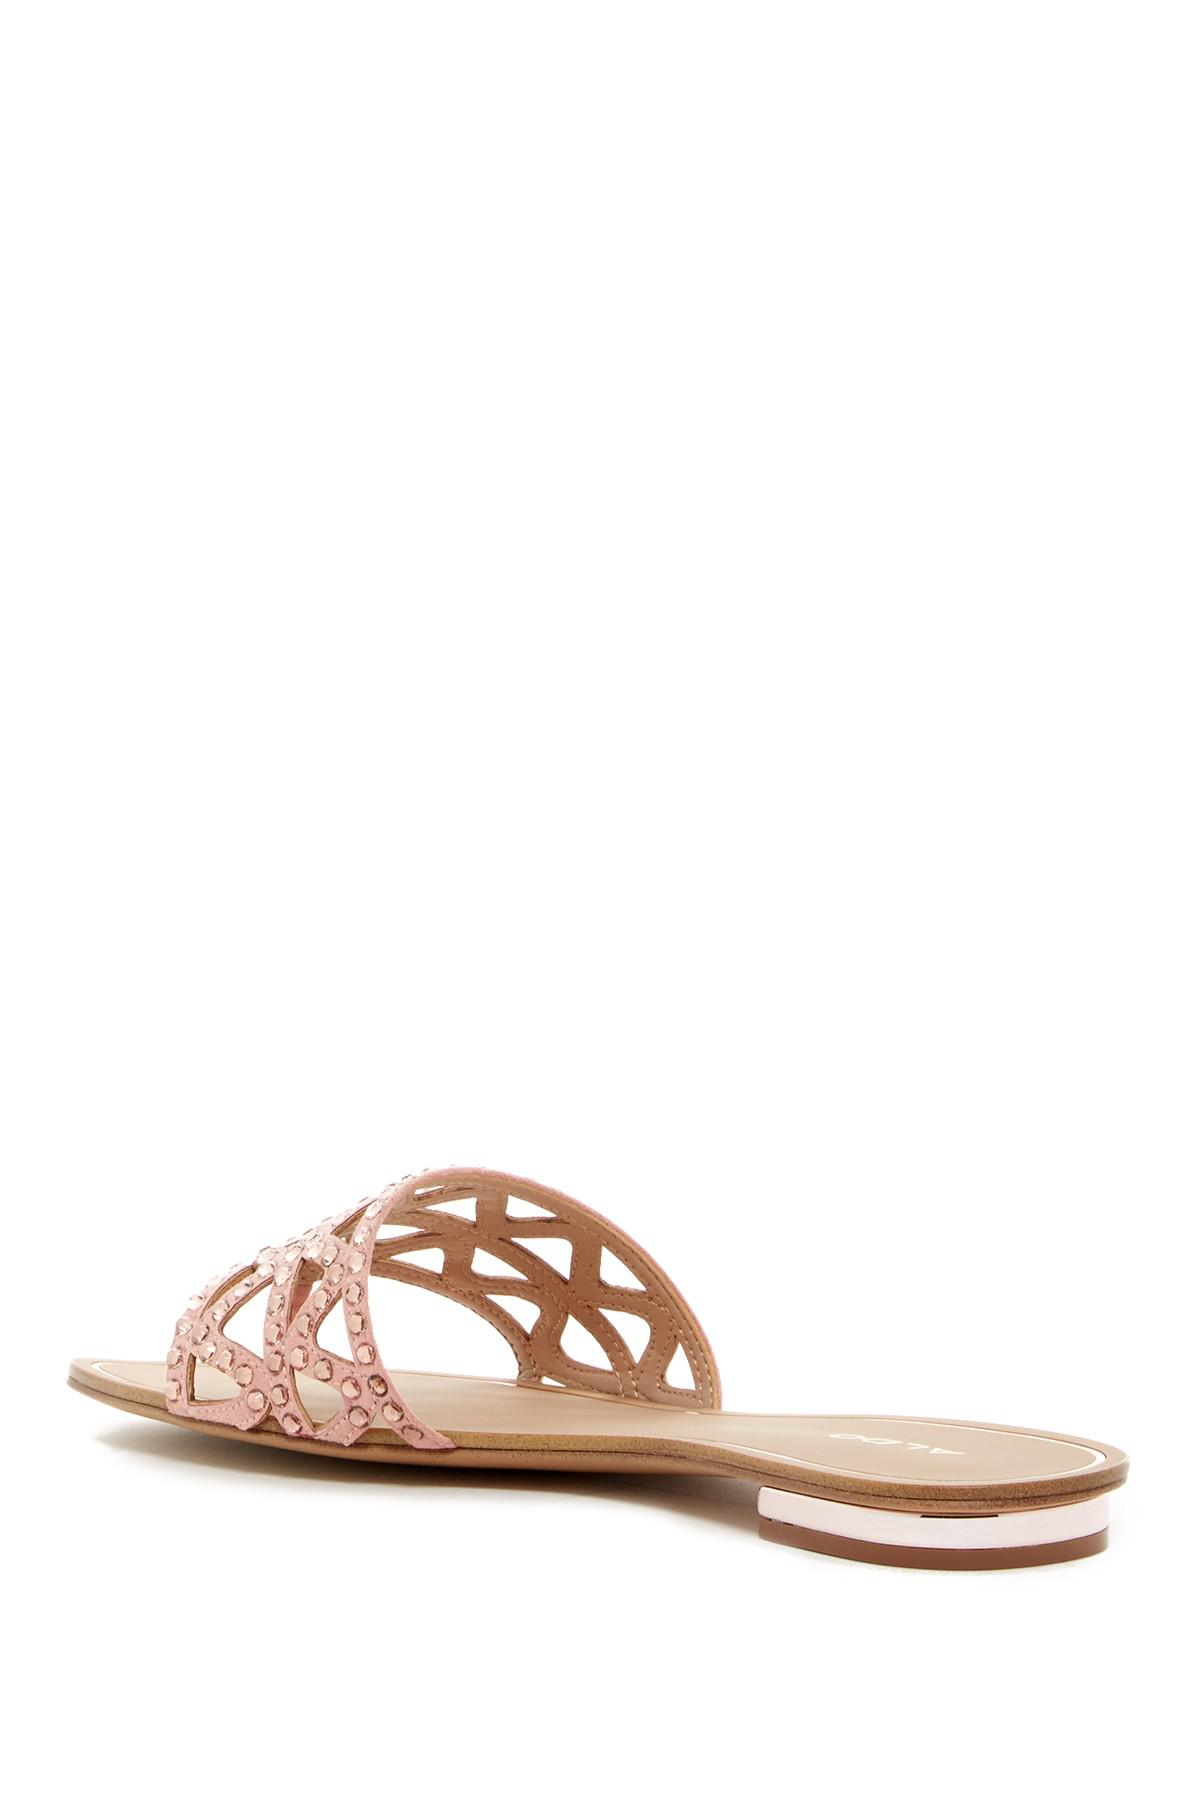 5ba51d9694bd Lyst - ALDO Fridia Studded Cutout Thong Sandal in Pink